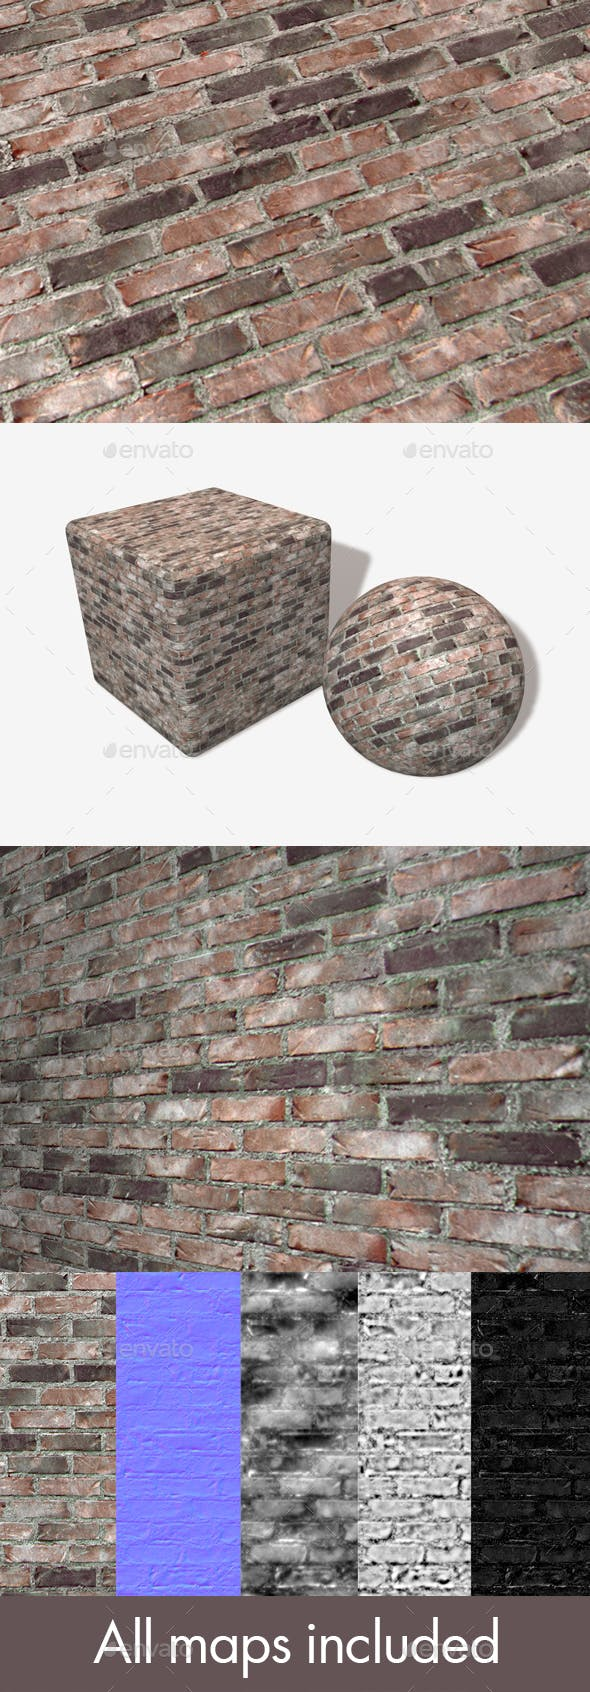 Recycled Bricks Seamless Texture - 3DOcean Item for Sale